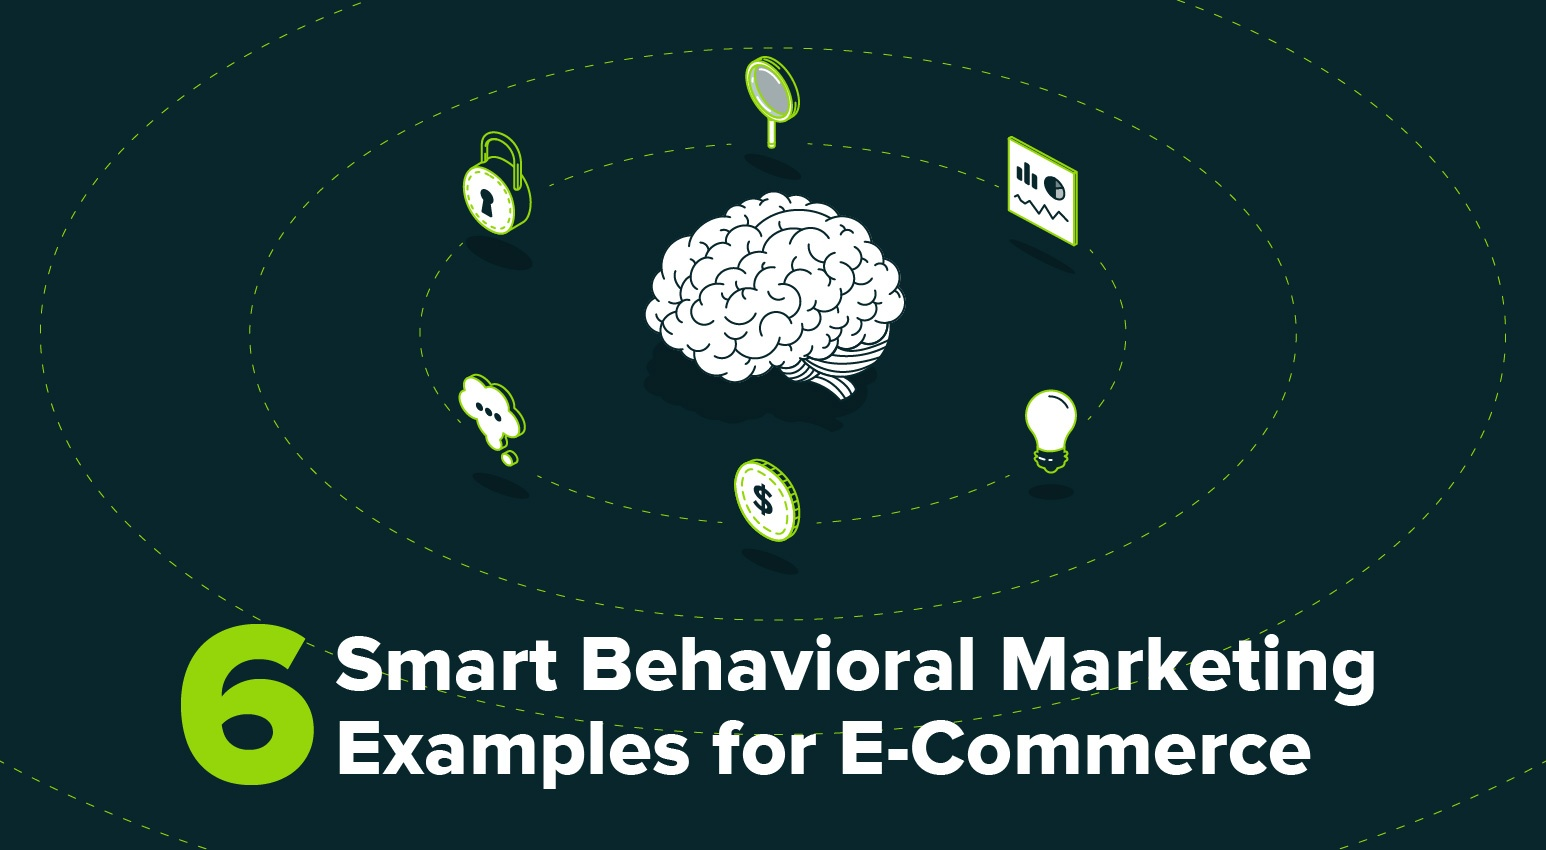 6-smart-behavioral-marketing-ecommerce-examples.jpg